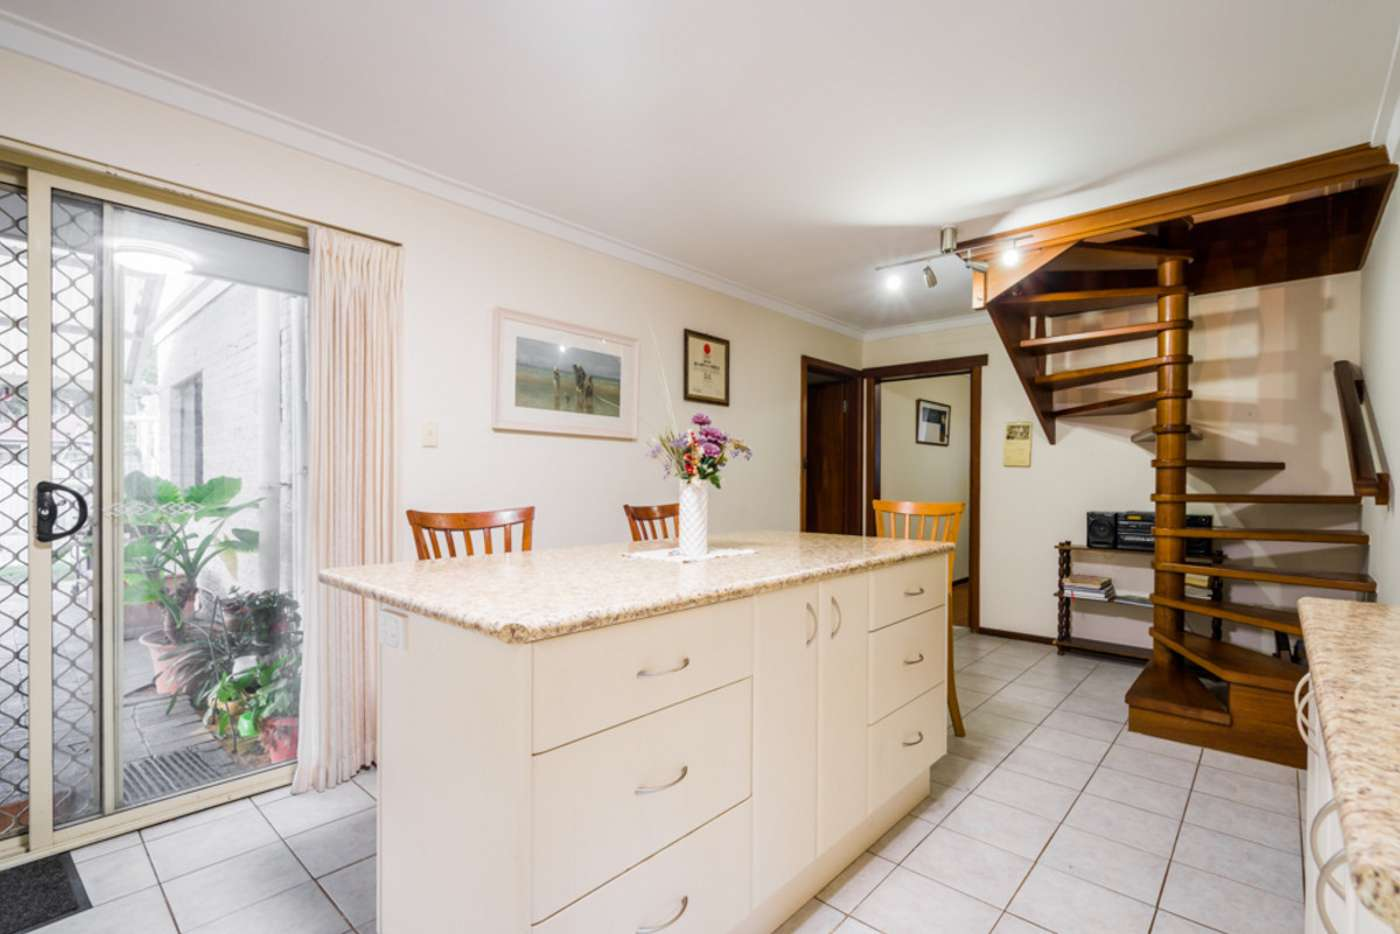 Sixth view of Homely house listing, 7 Birtwistle Place, Roleystone WA 6111